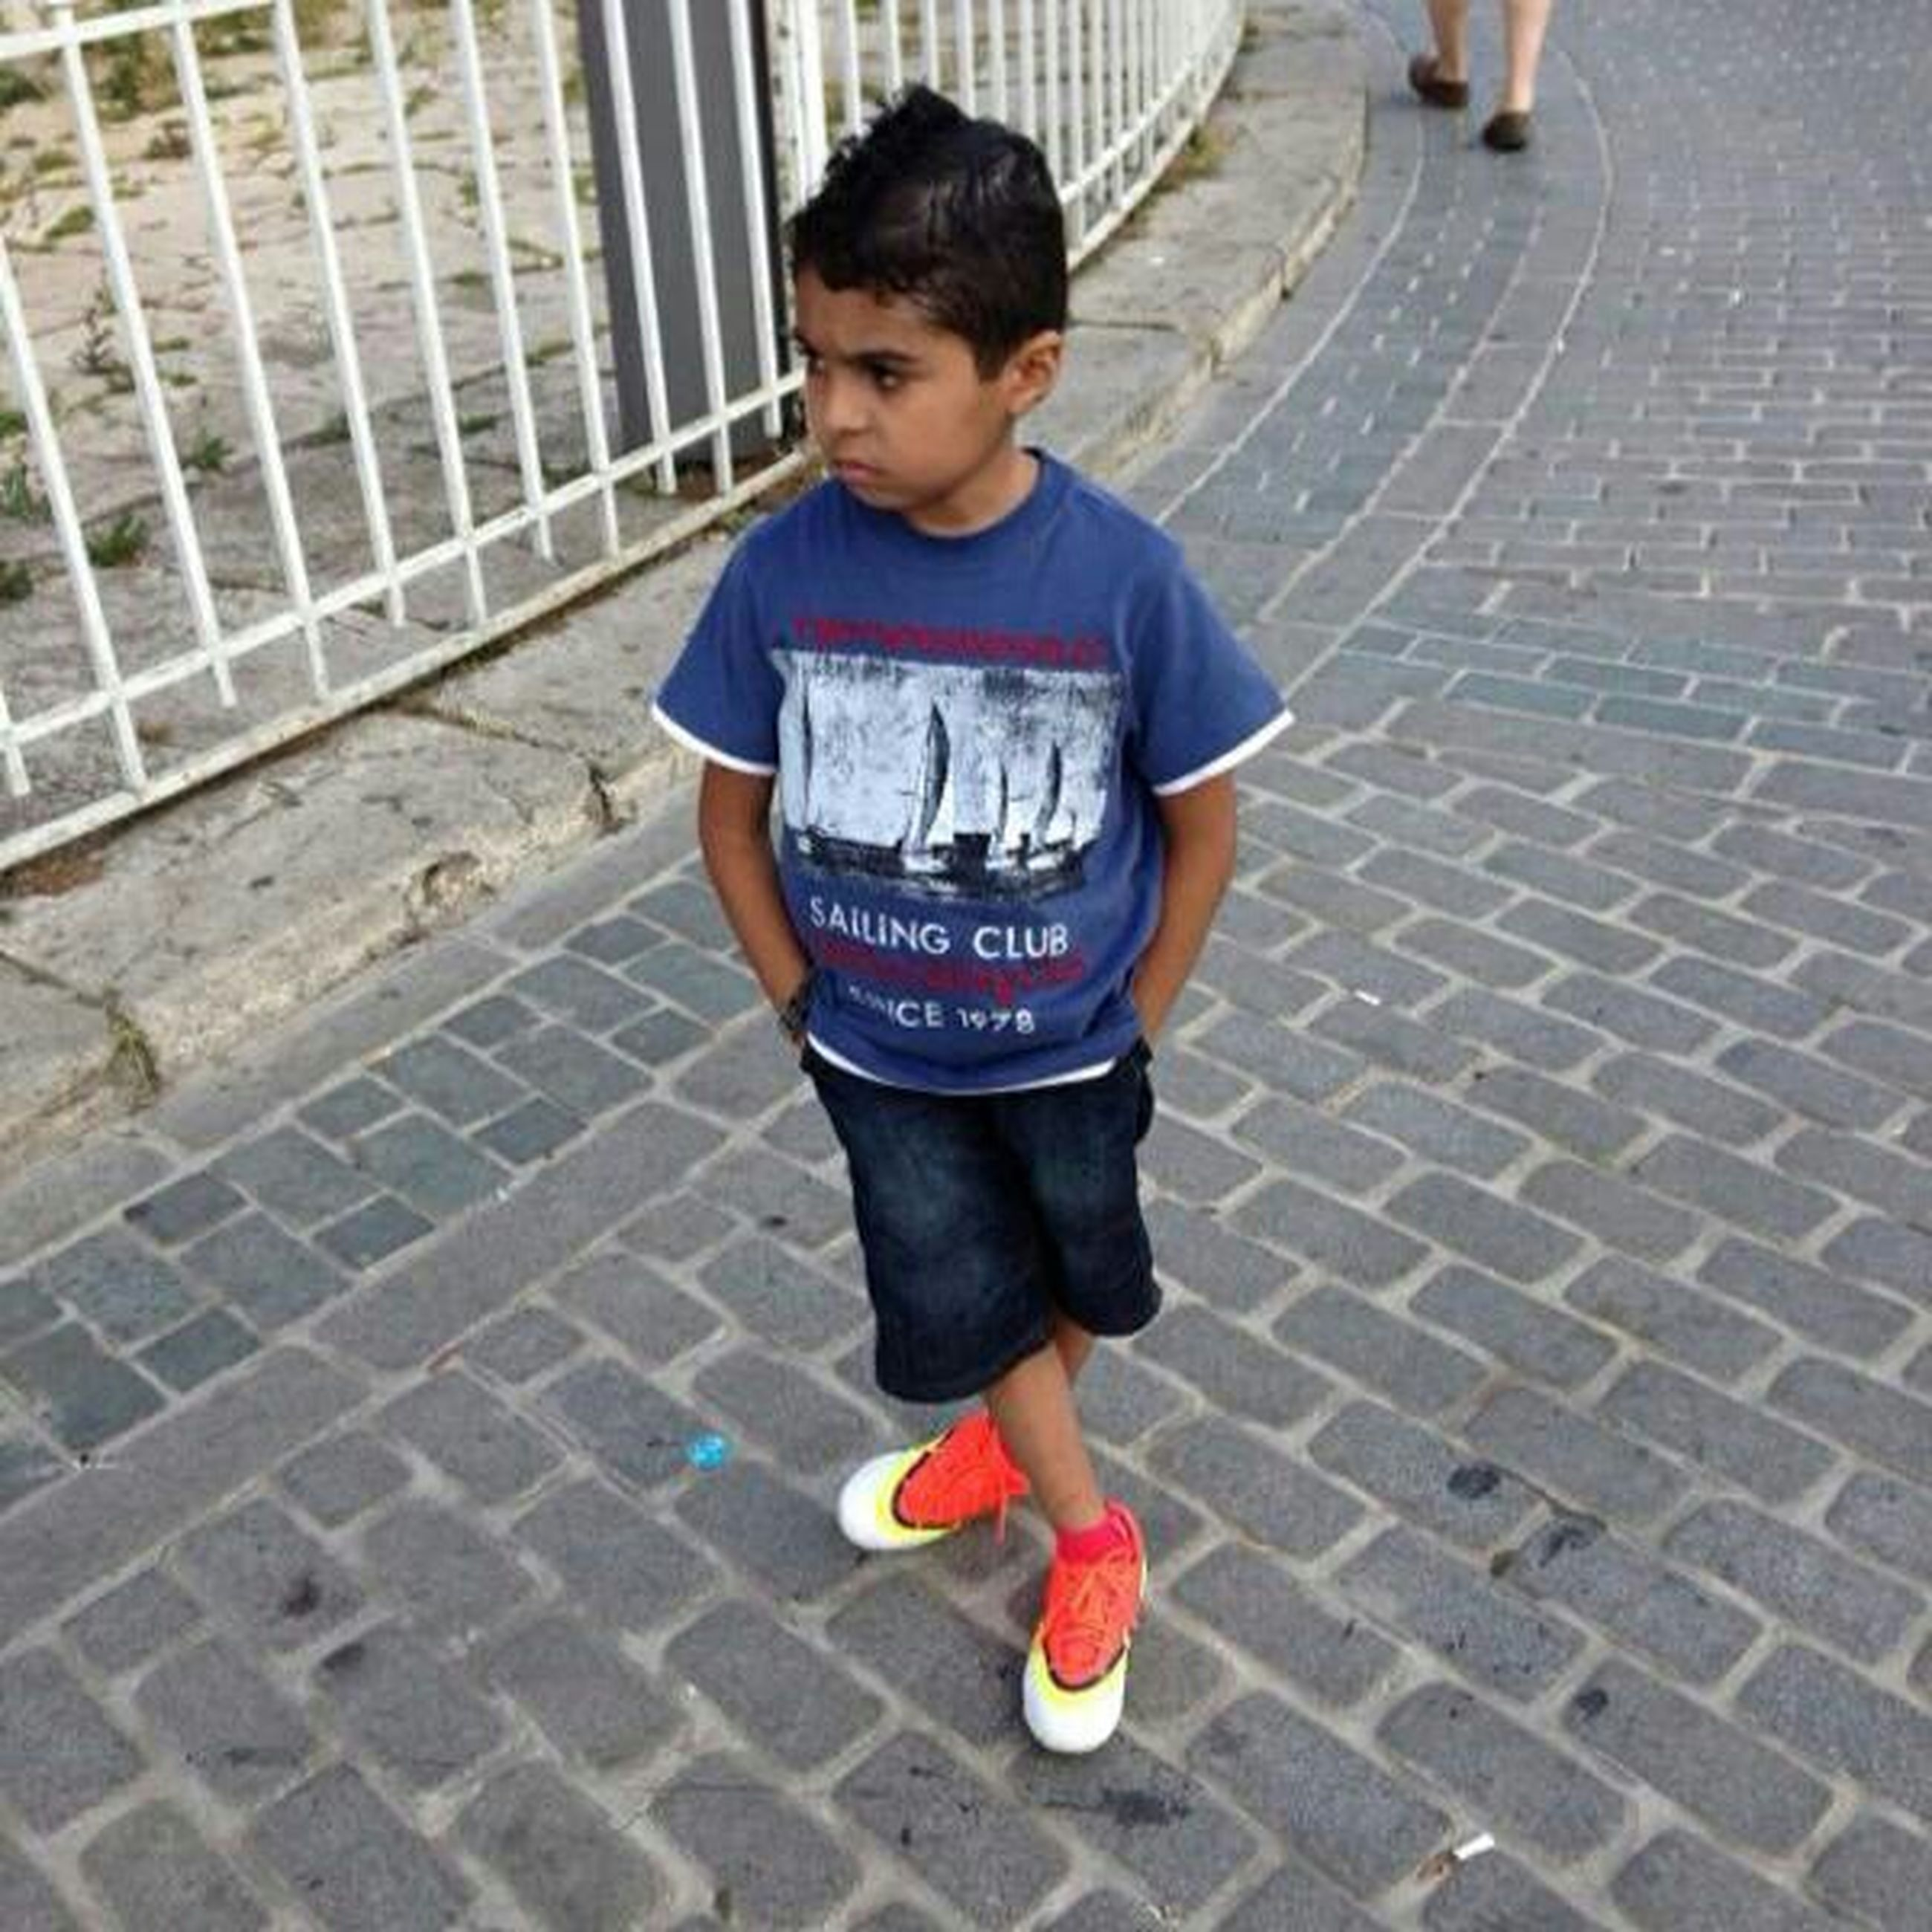 full length, casual clothing, childhood, person, lifestyles, elementary age, street, cute, front view, leisure activity, boys, innocence, looking at camera, portrait, sidewalk, standing, high angle view, footpath